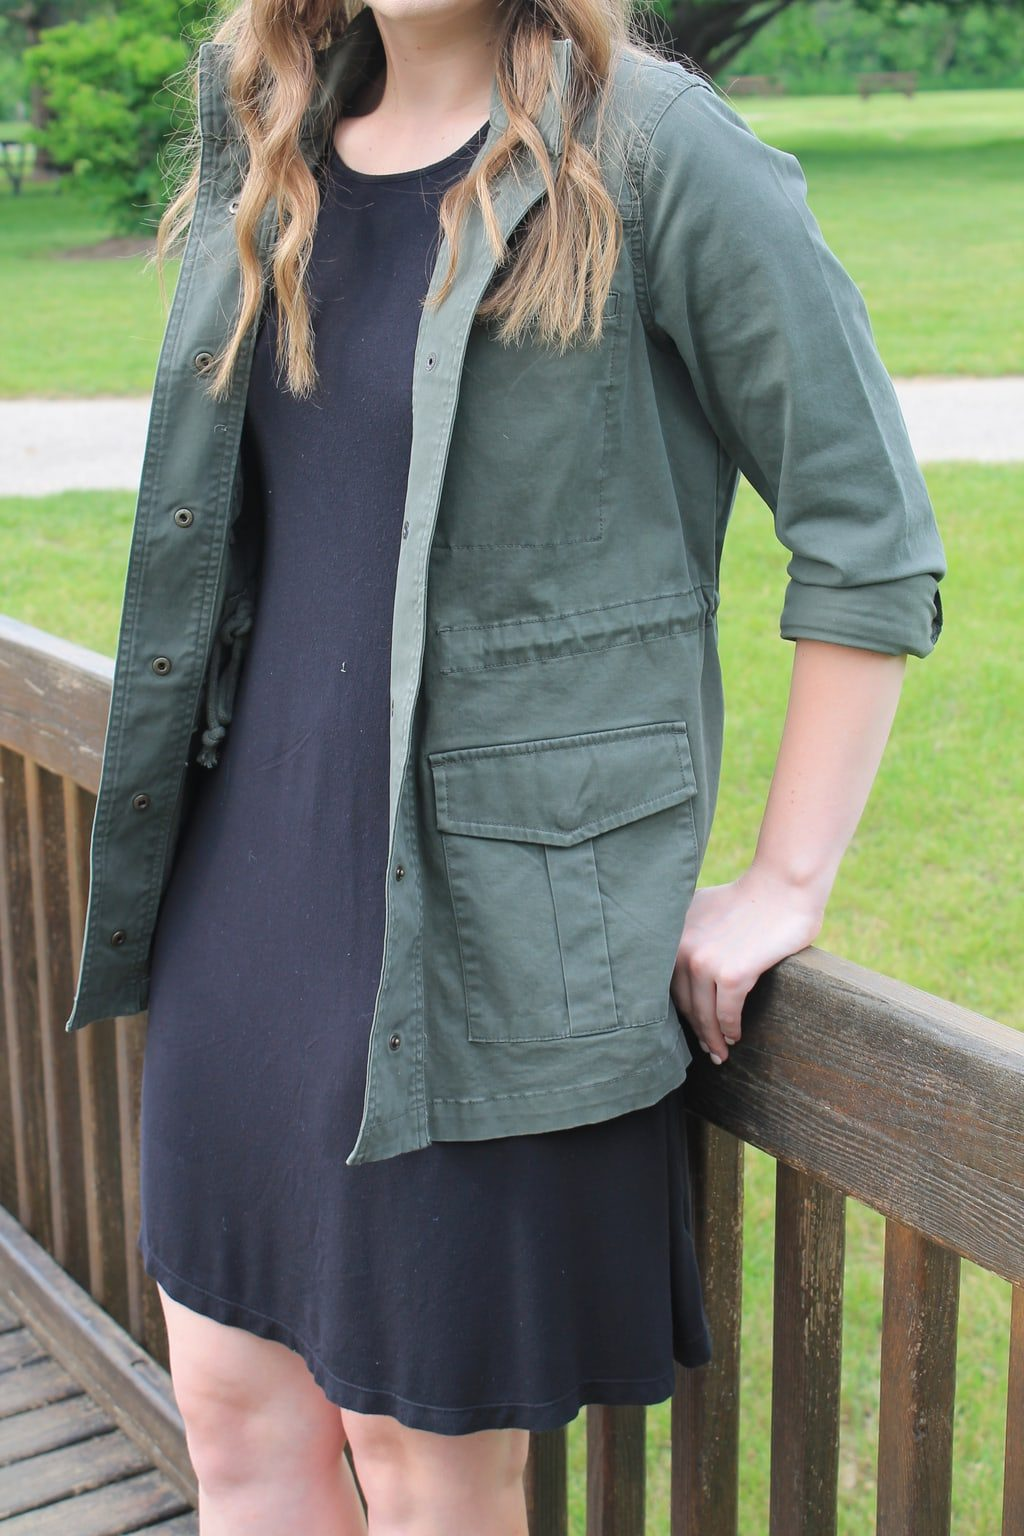 Rebecca wears a simple black shift dress with an army green anorak jacket.